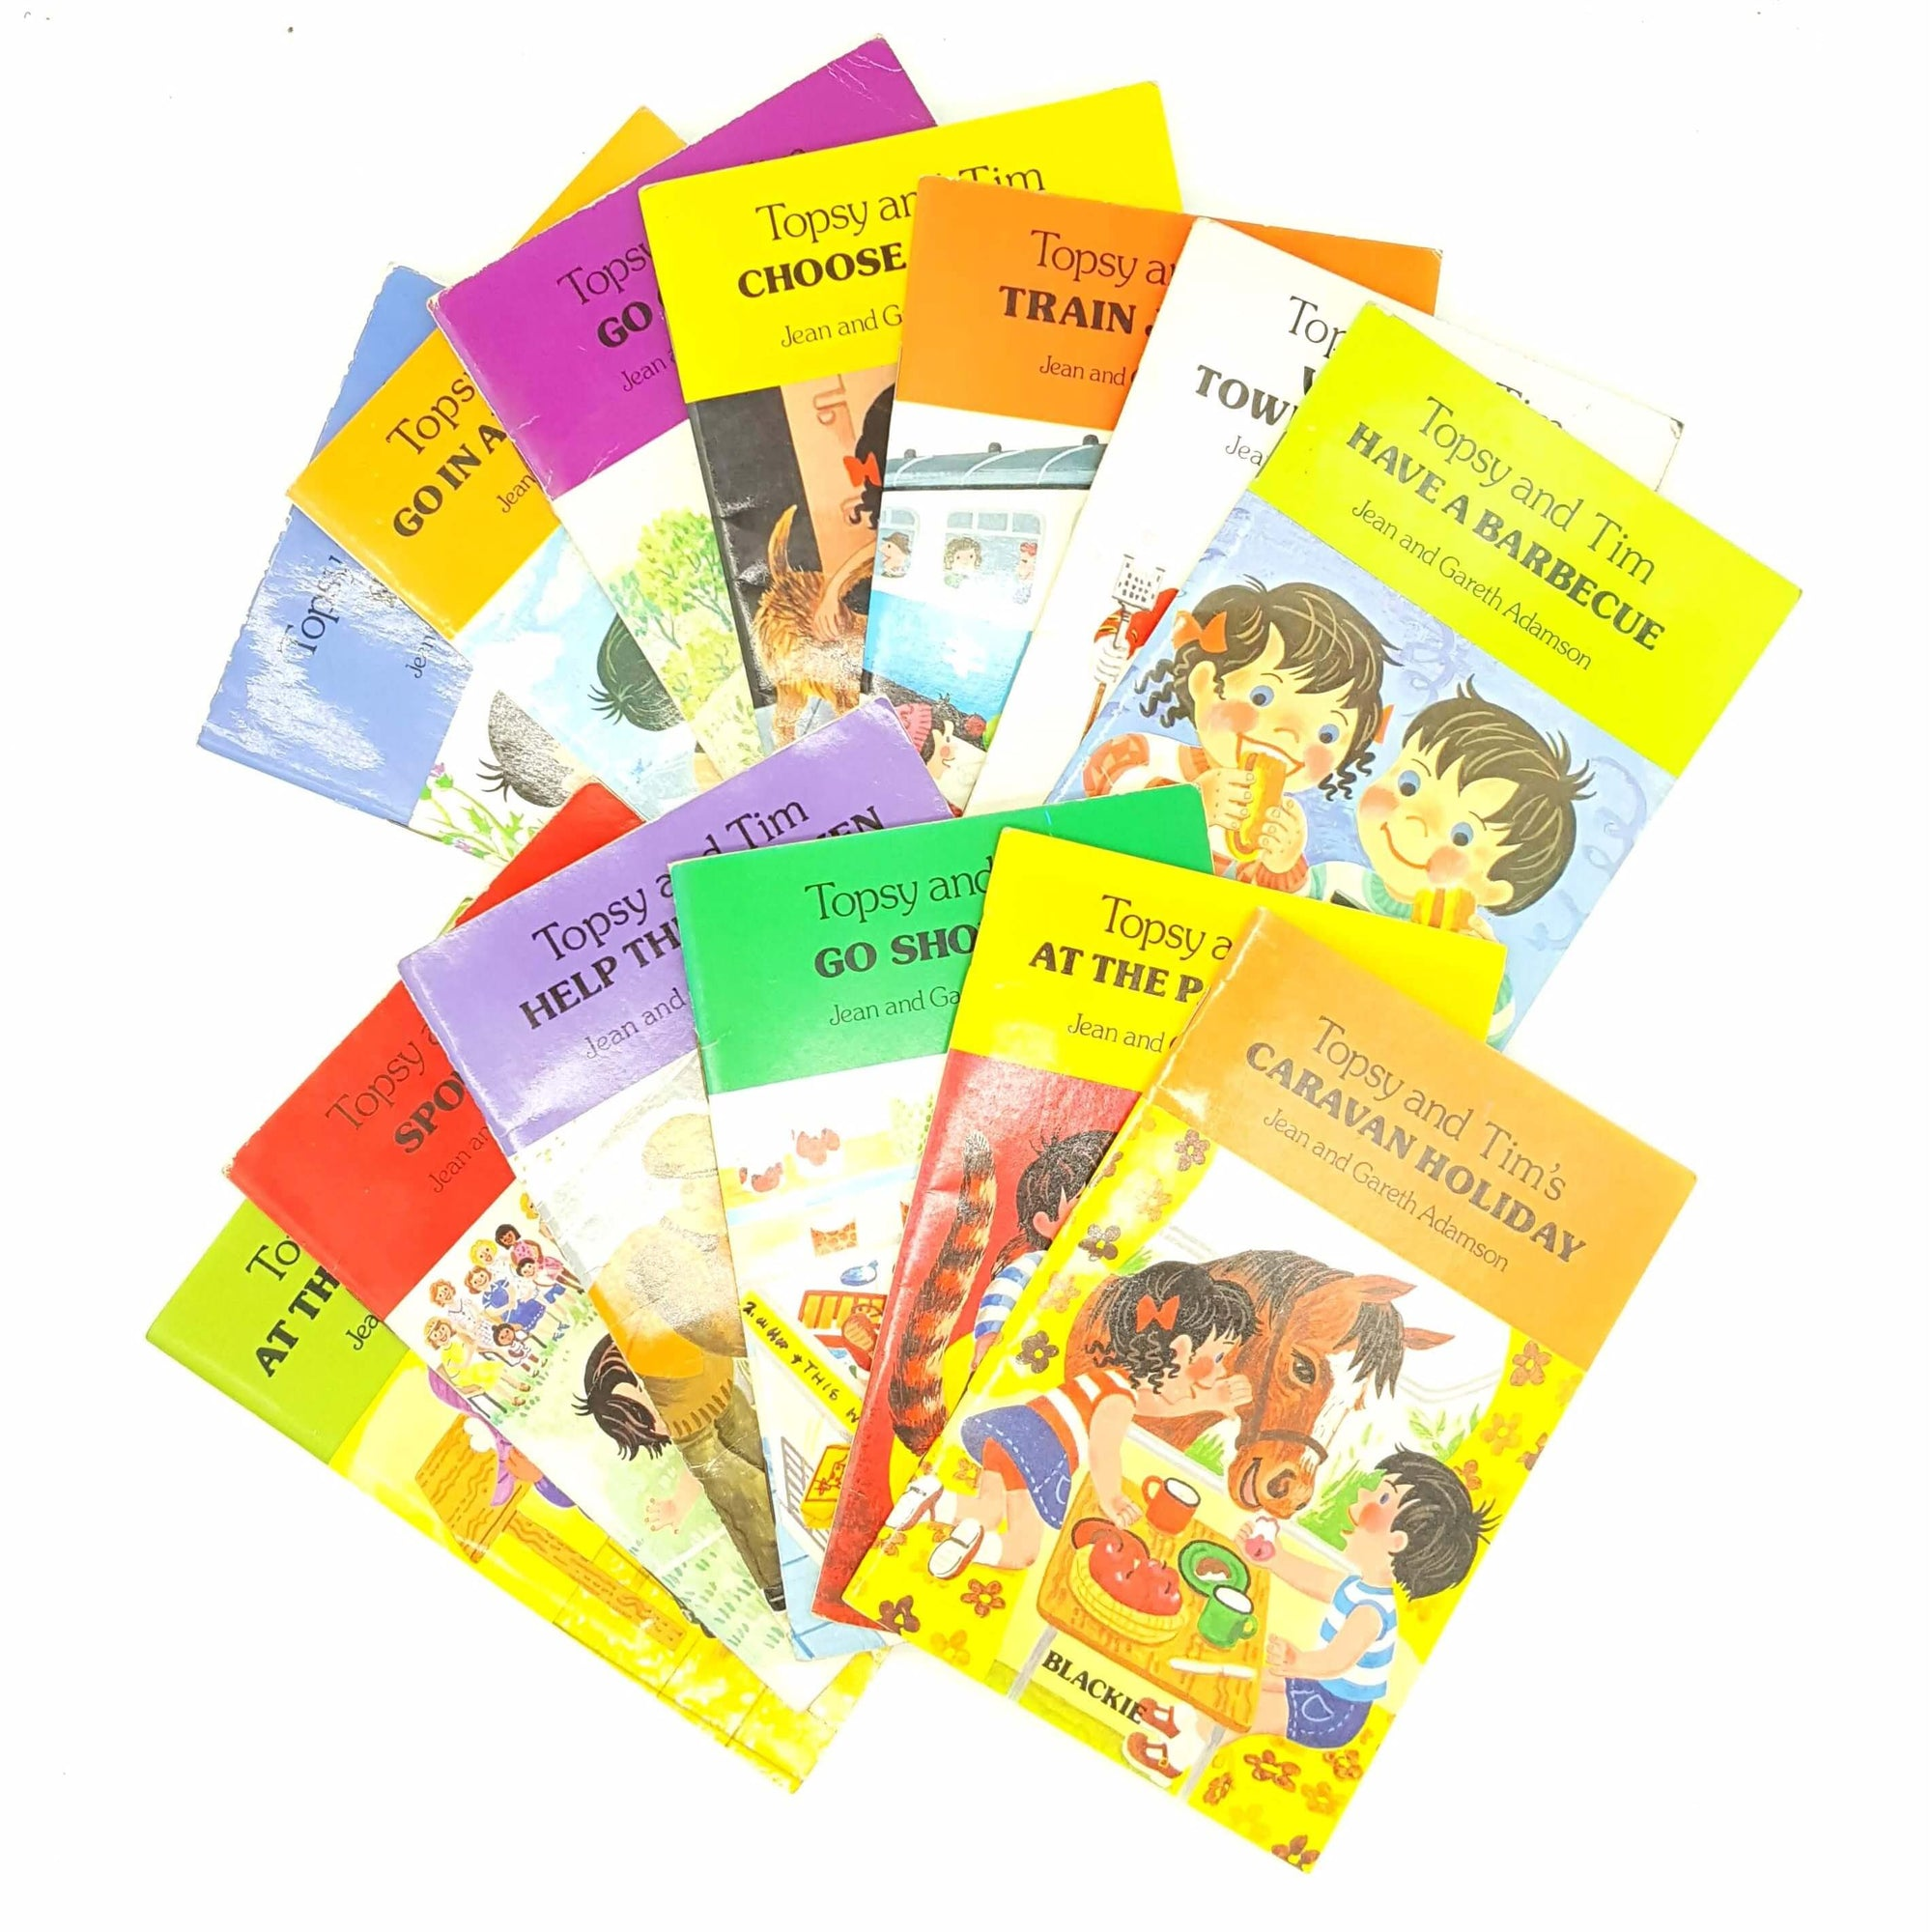 Collection of Twenty Topsy and Tim c.1970 Country House Library